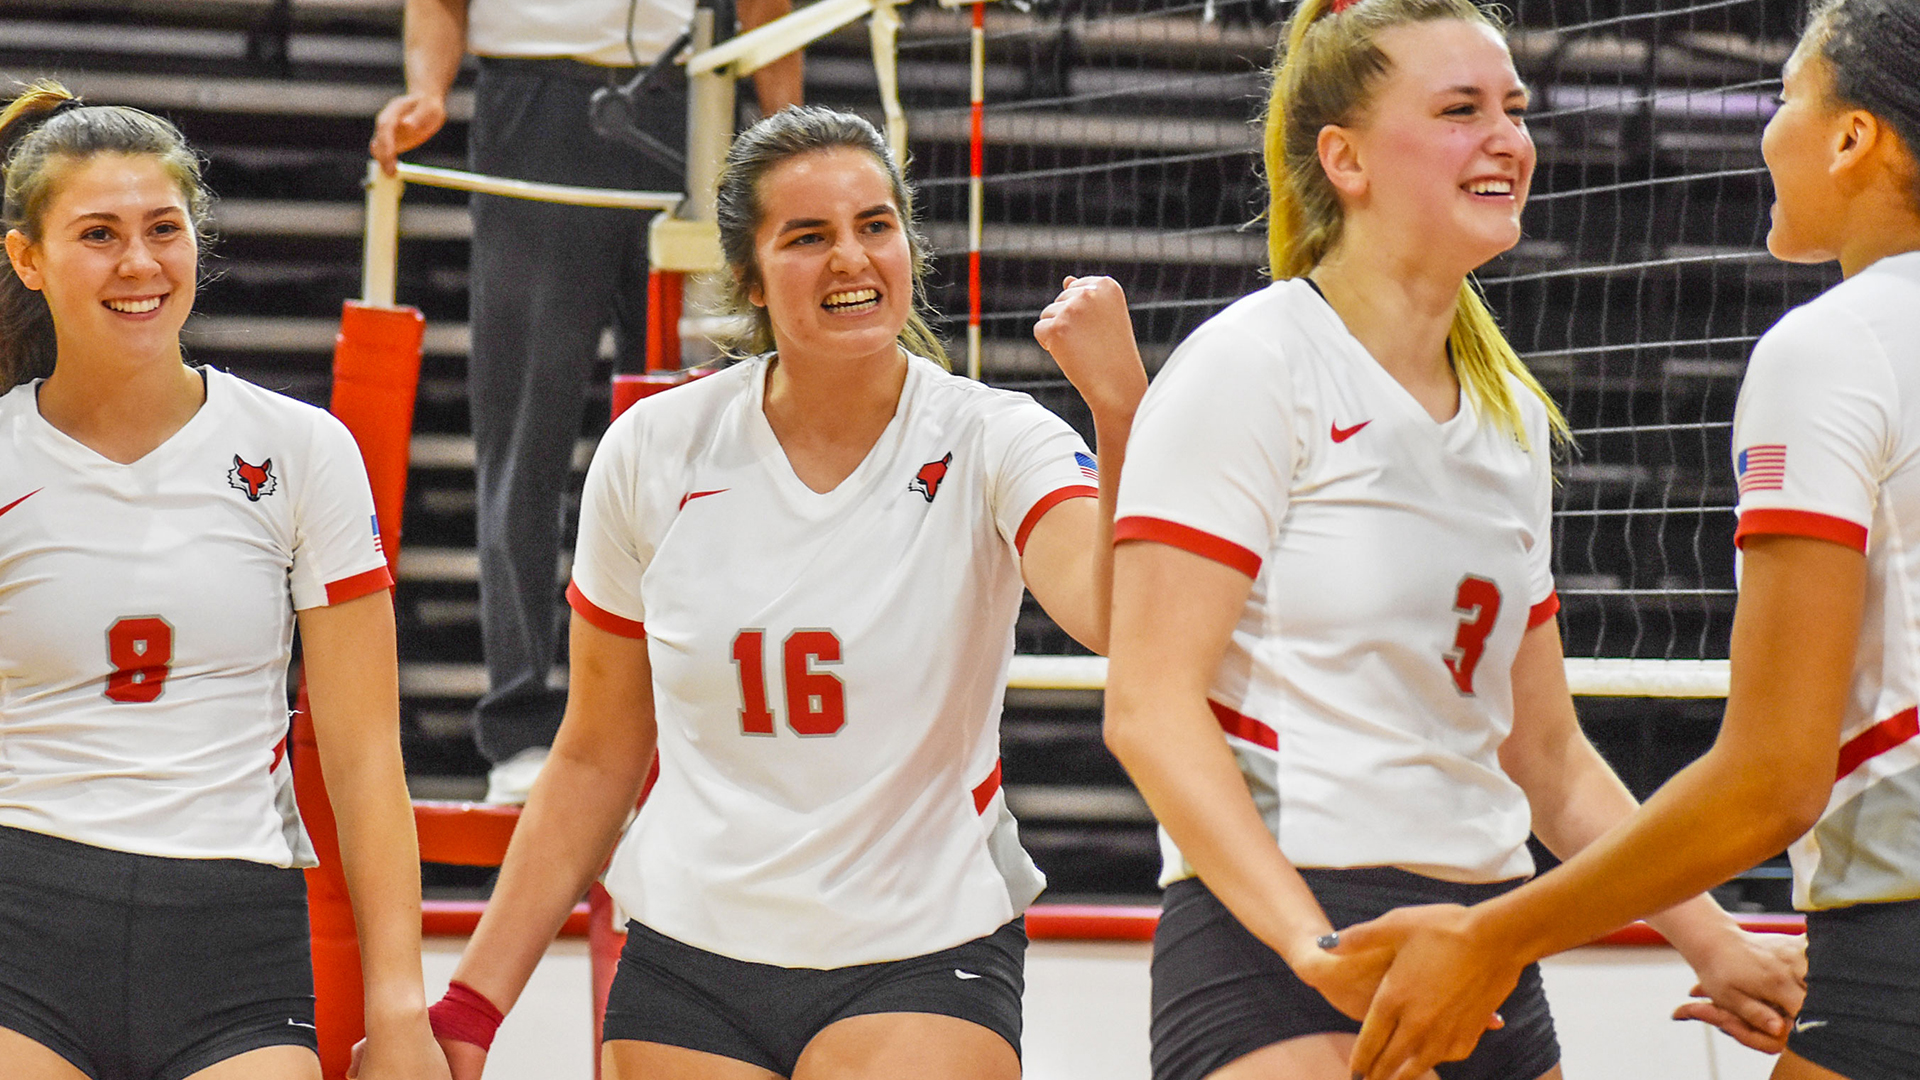 Lahey Named To Volleyballmag Com S Coaching Hotshots List Marist College Athletics